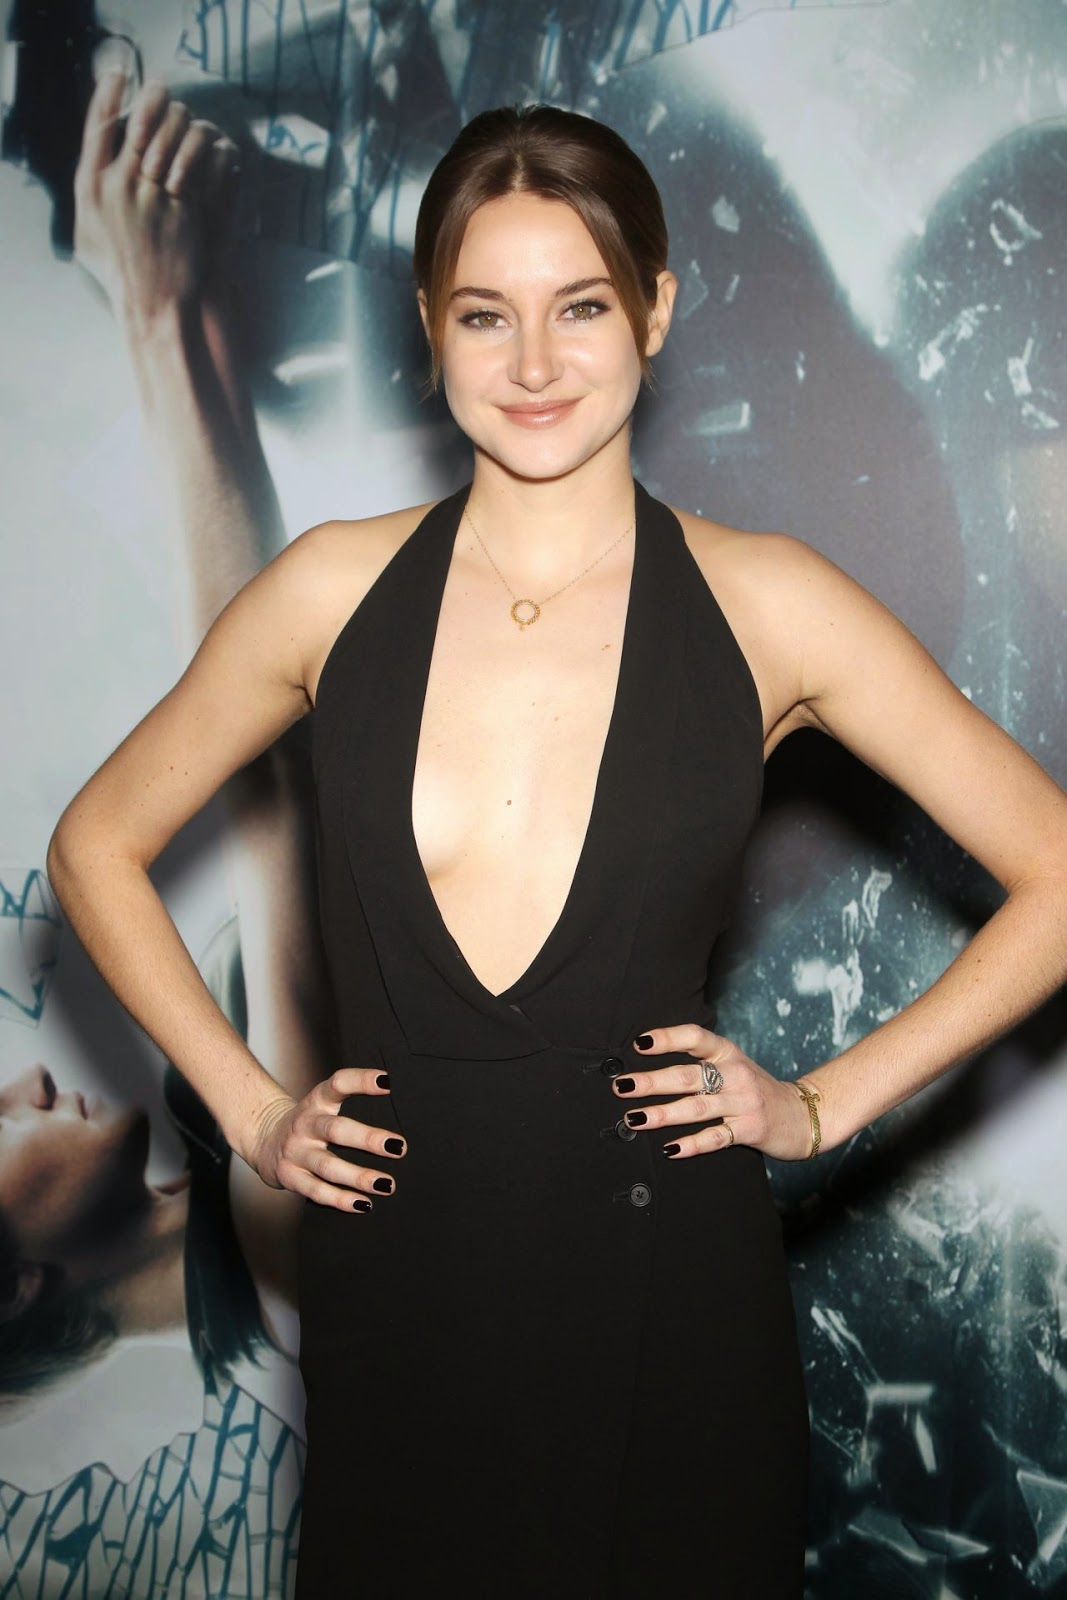 Actress @ Shailene Woodley - 'Insurgent' Premiere in New York City